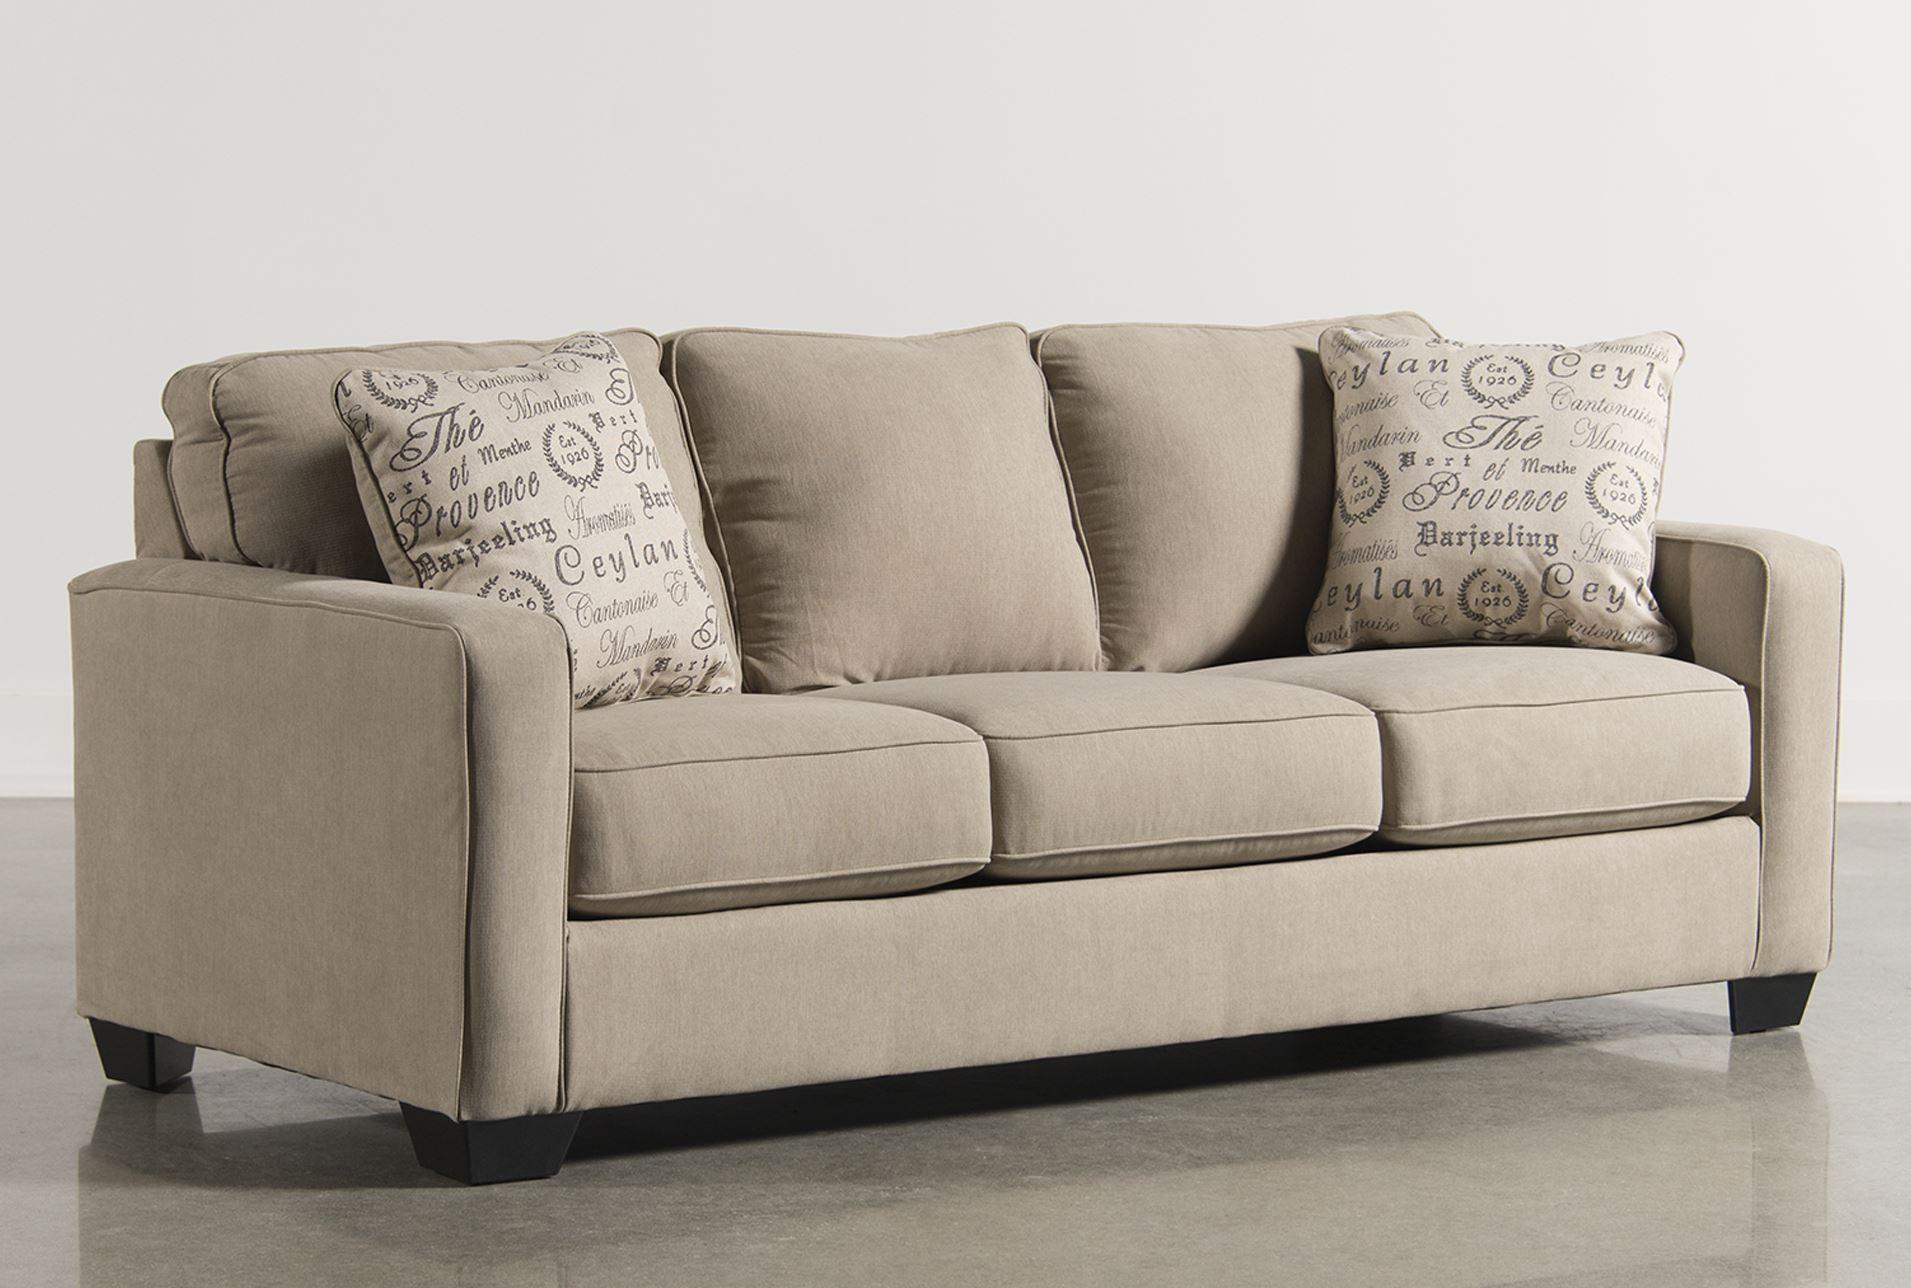 sofa sleeper chicago benchcraft brileigh reviews alenya quartz queen free delivery marjen